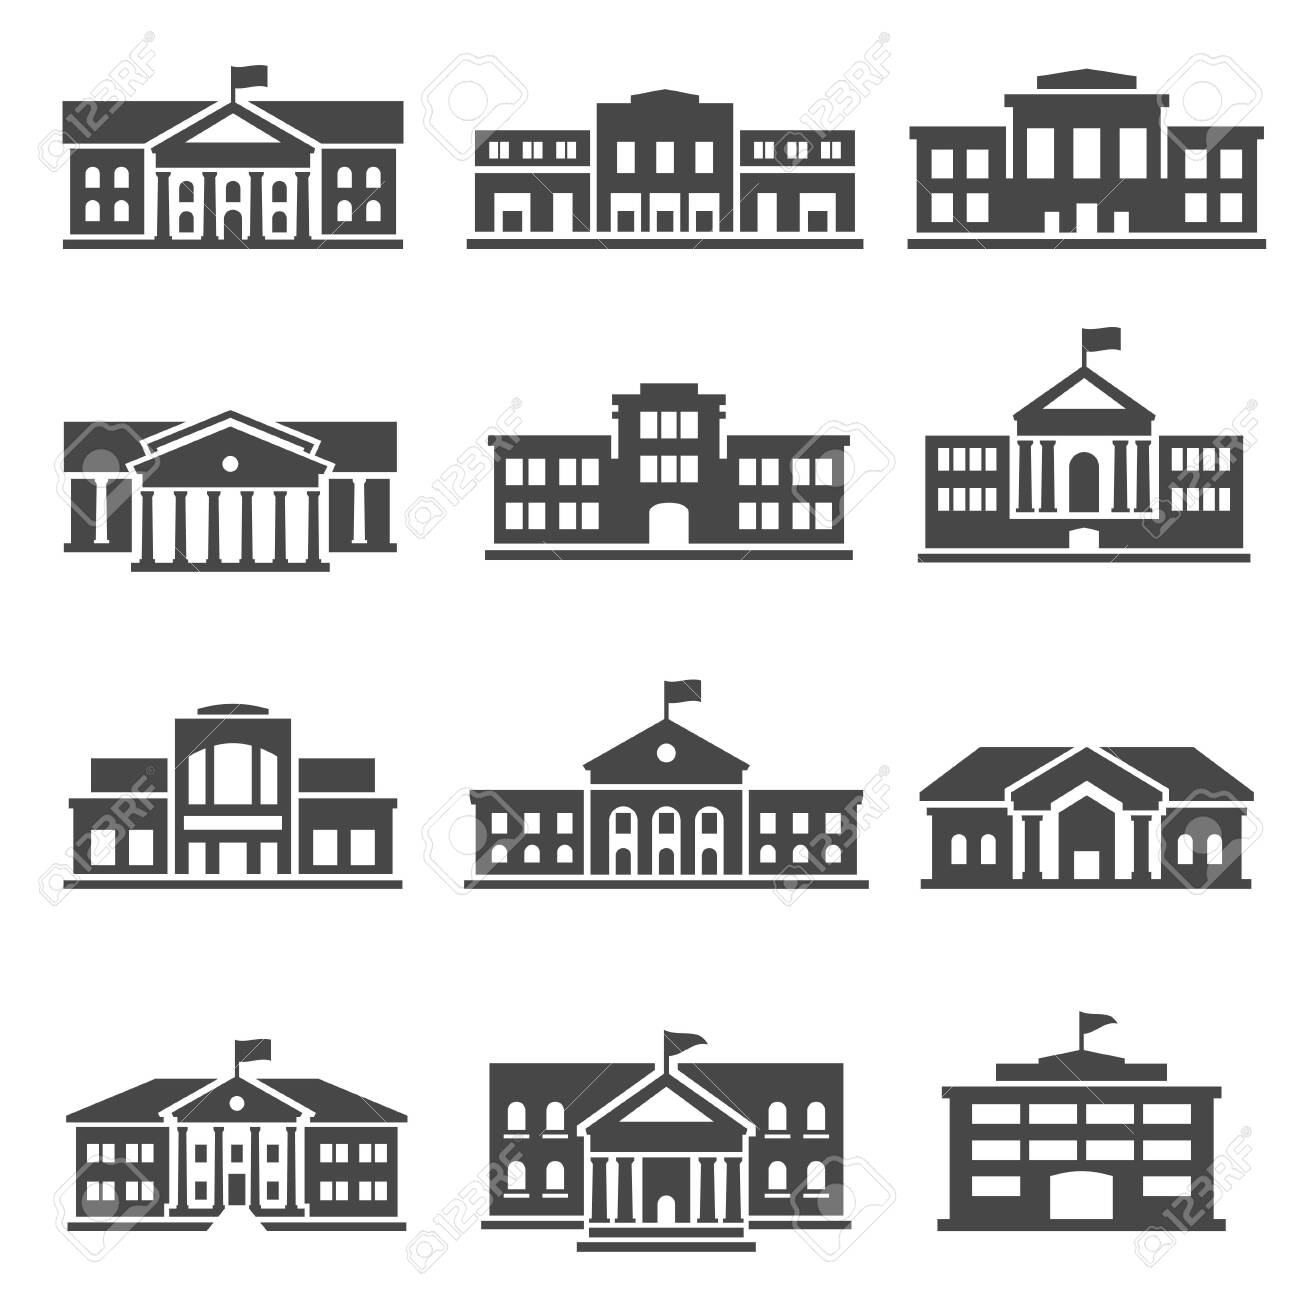 School, university bold black silhouette icons set isolated on white. College buildings. - 154449431